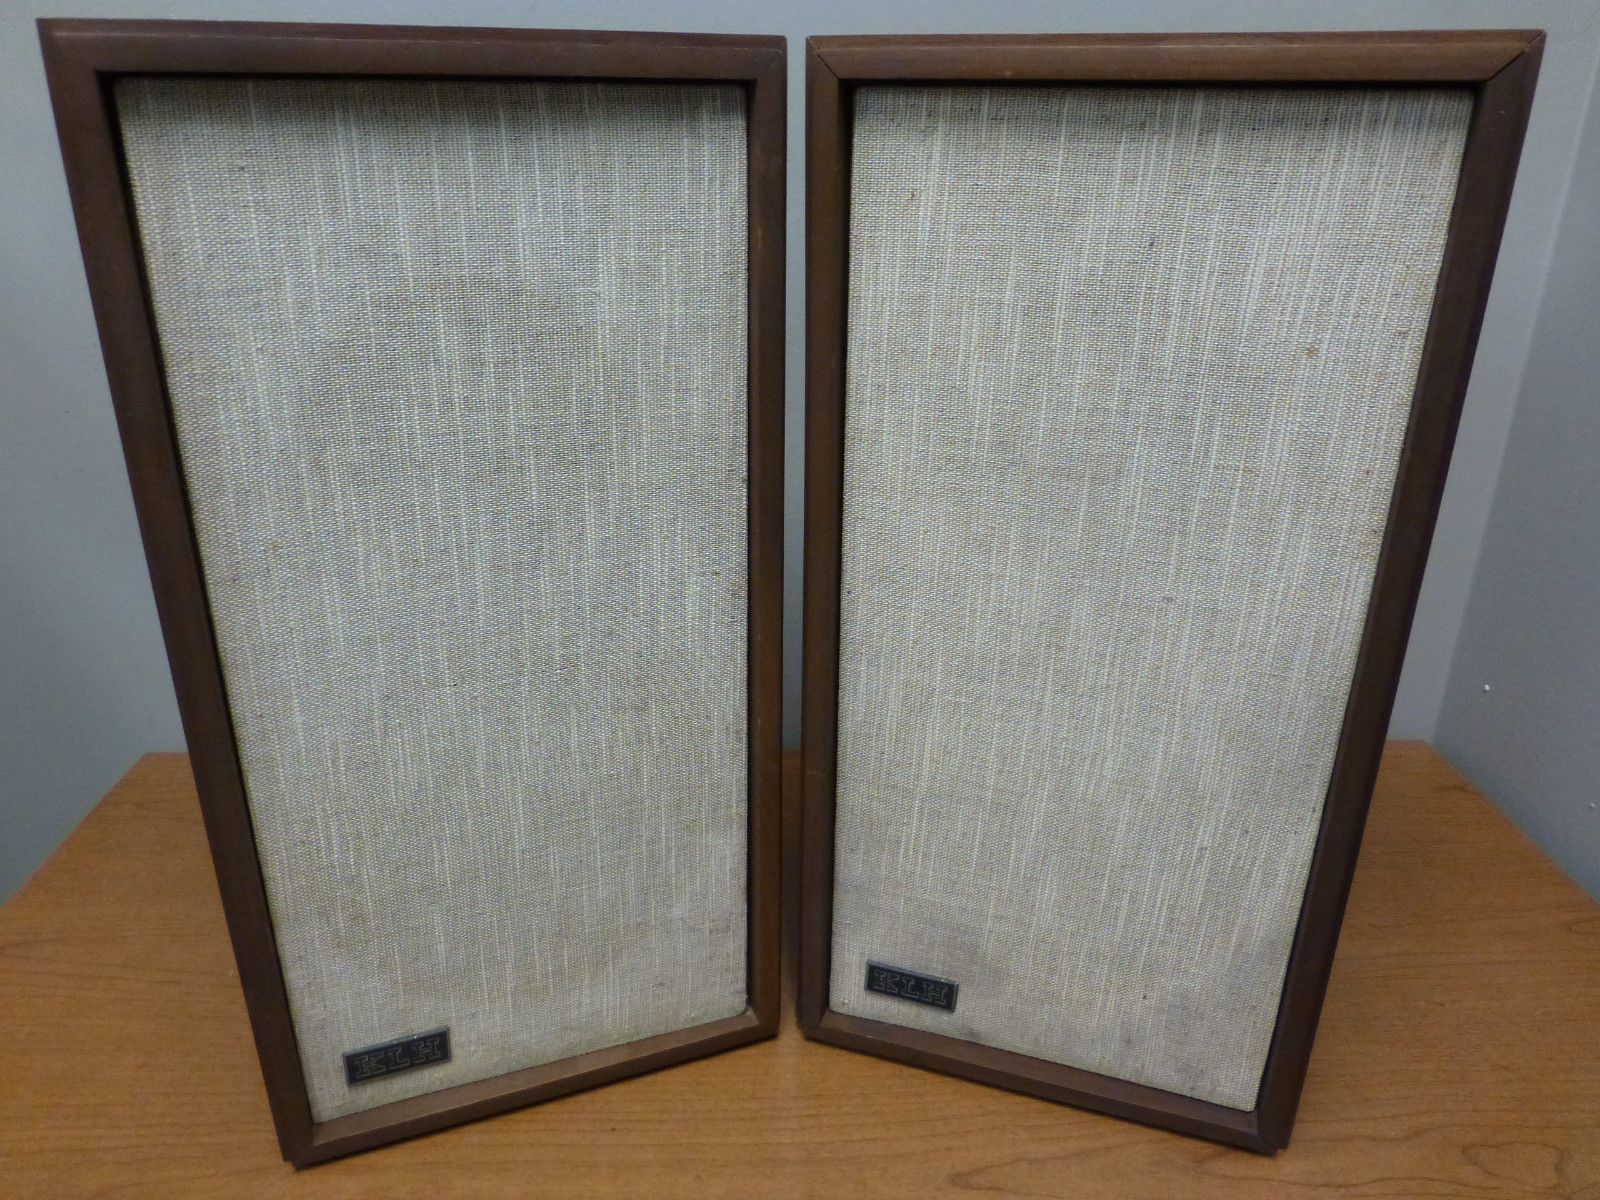 Küchenregal landhausstil ~ Klh model 17 vintage bookshelf speaker walnut pair tested works